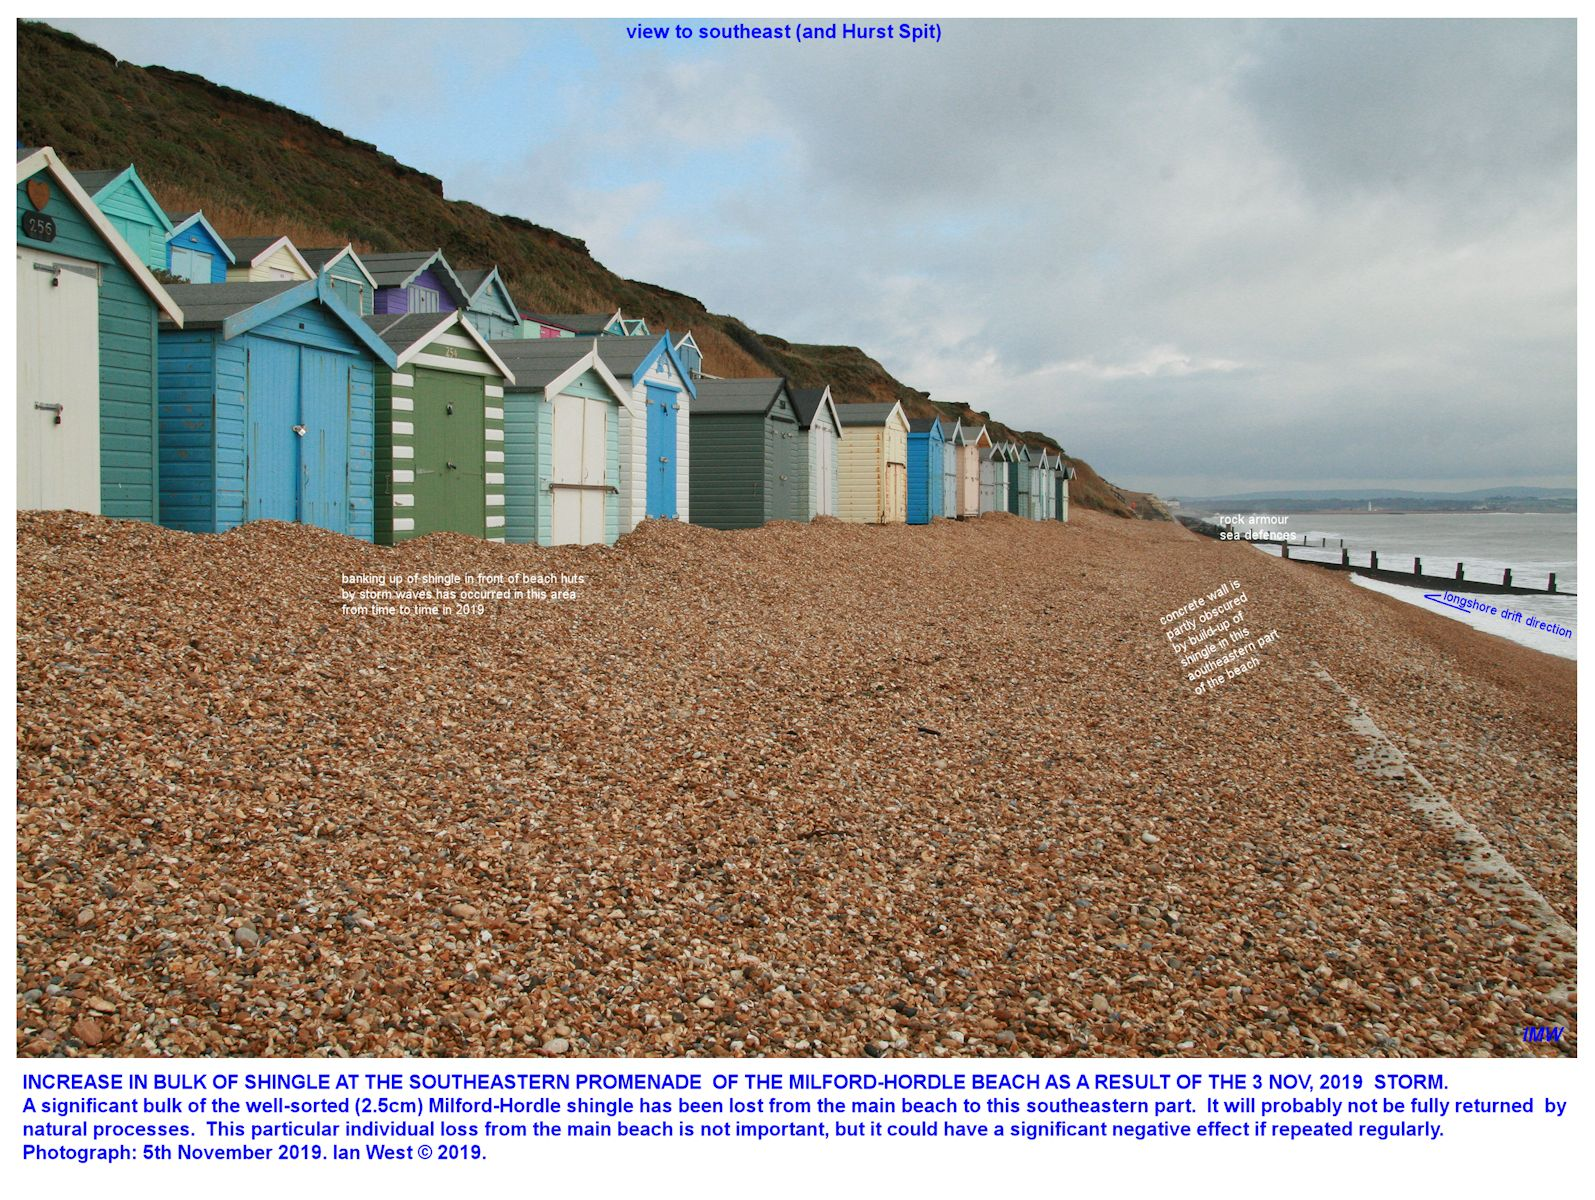 Some shingle accumulation in the southeastern part of the beach at the Milford - Hordle car park, 5th November 2019, Ian West